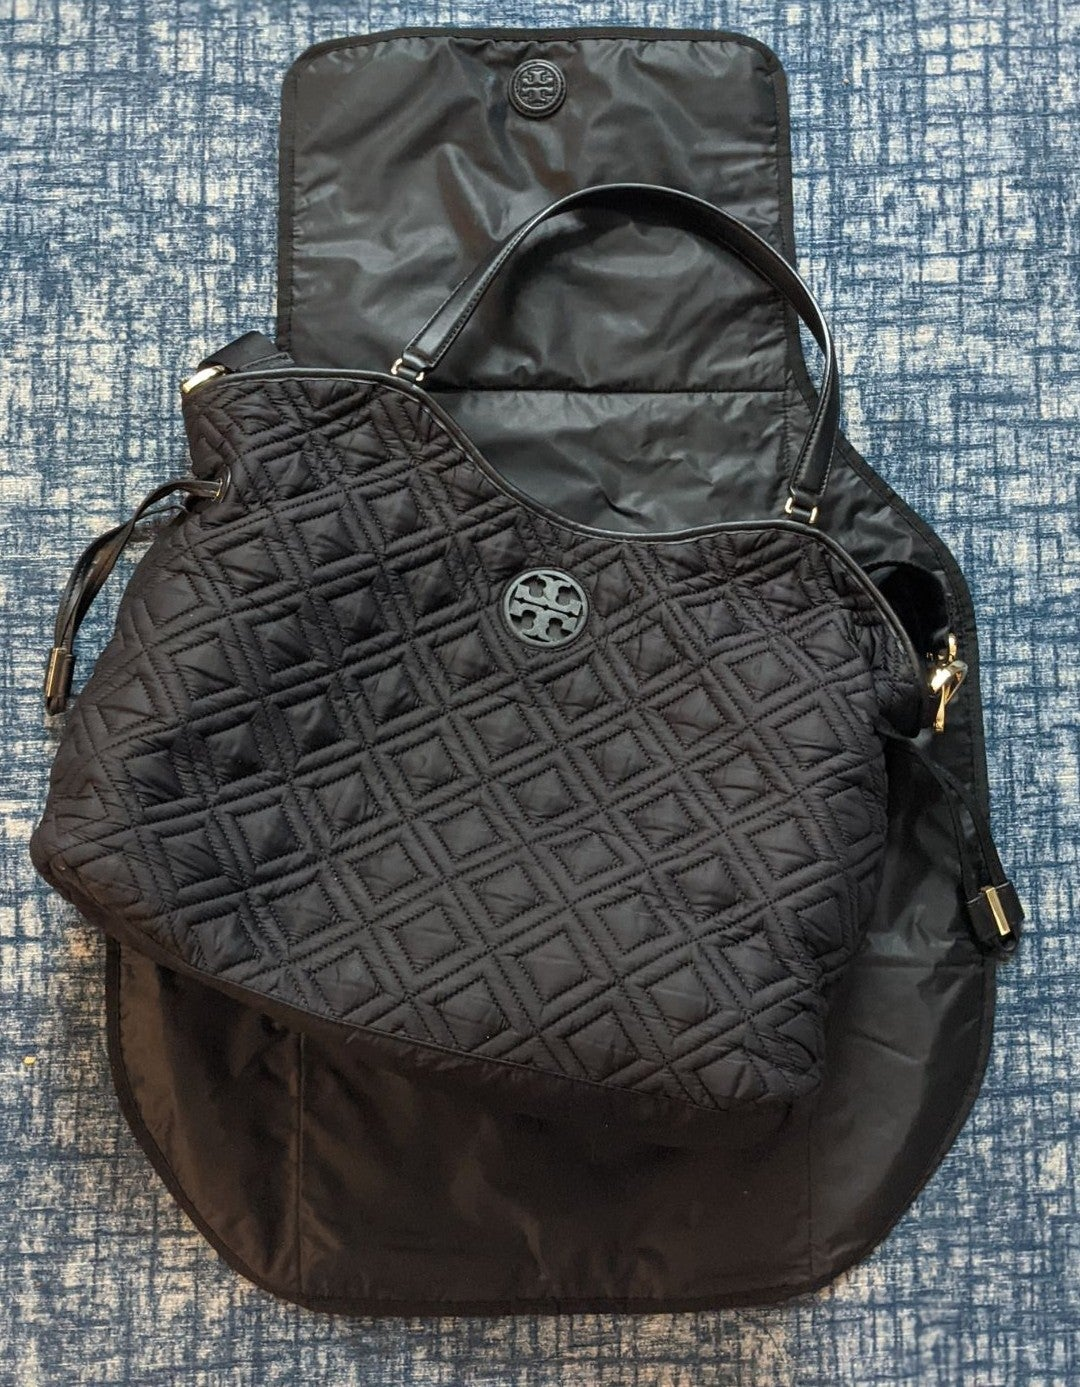 Tory Burch Quilted Diaper Bag